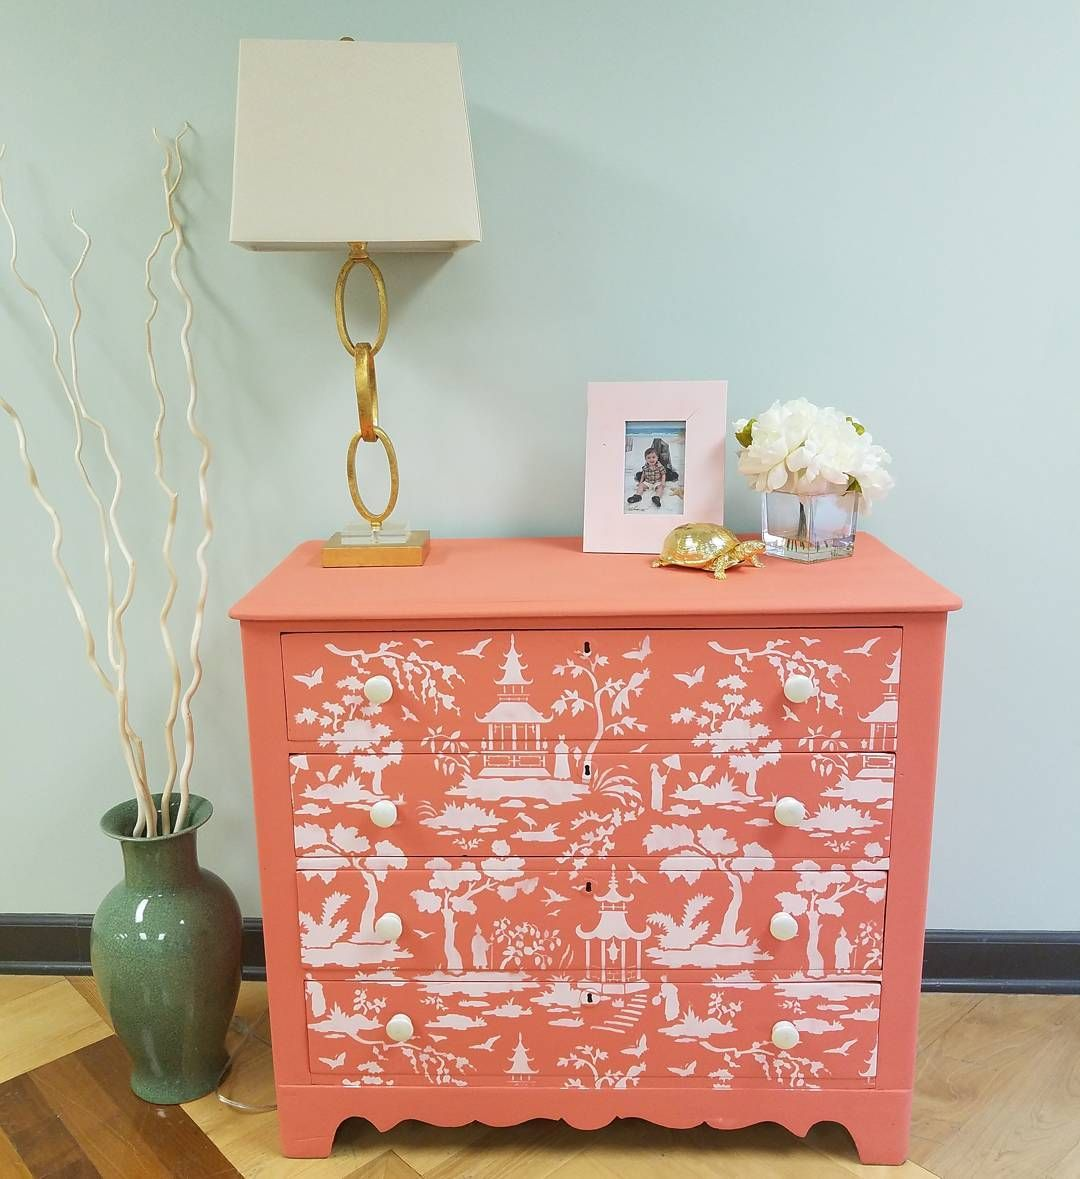 image stencils furniture painting. Paint Can Do Wonders For Blah And Bland Furniture. But There Are More Things You Besides Just Slapping On A Fresh Color. Furniture Stencil Is Image Stencils Painting I